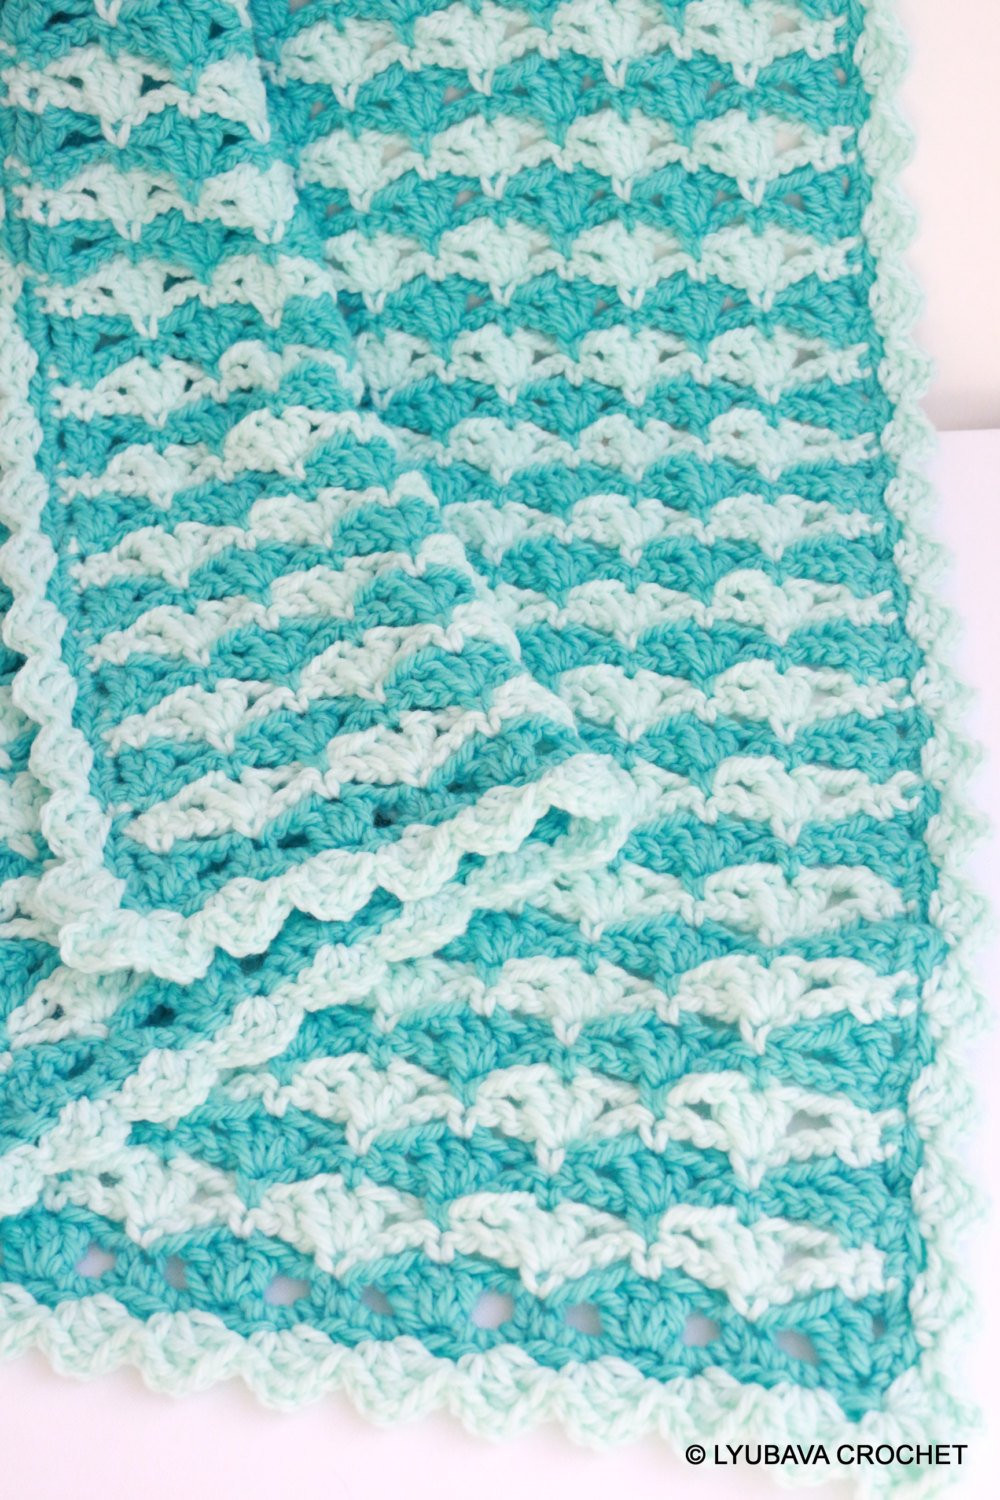 Baby Boy Crochet Blanket Patterns Inspirational Turquoise Baby Blanket Chunky Crochet Blanket for Baby Boy Of Baby Boy Crochet Blanket Patterns Elegant Fiber Flux Beautiful Blankets 30 Free Crochet Blanket